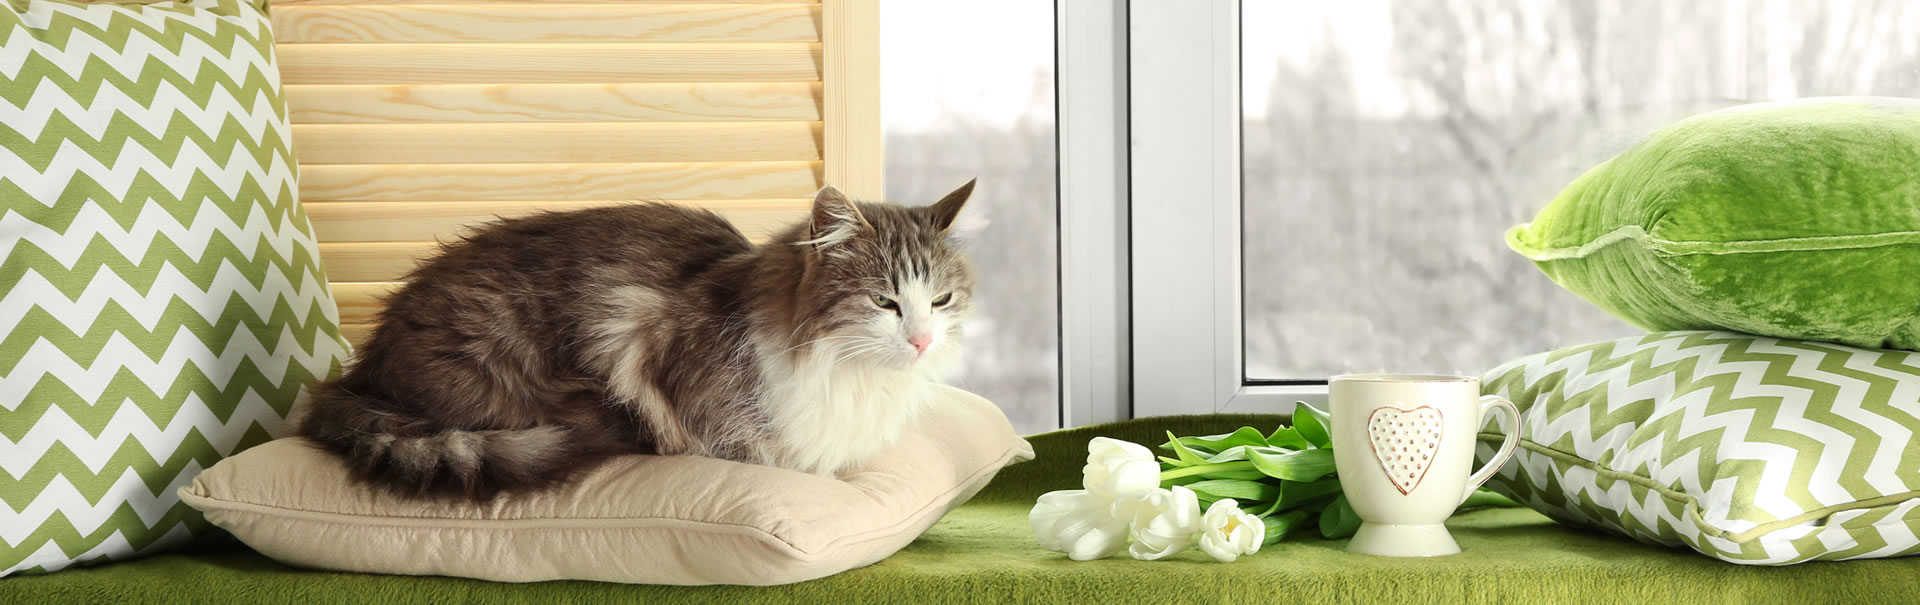 catalog/site images/cushions_cat.jpg